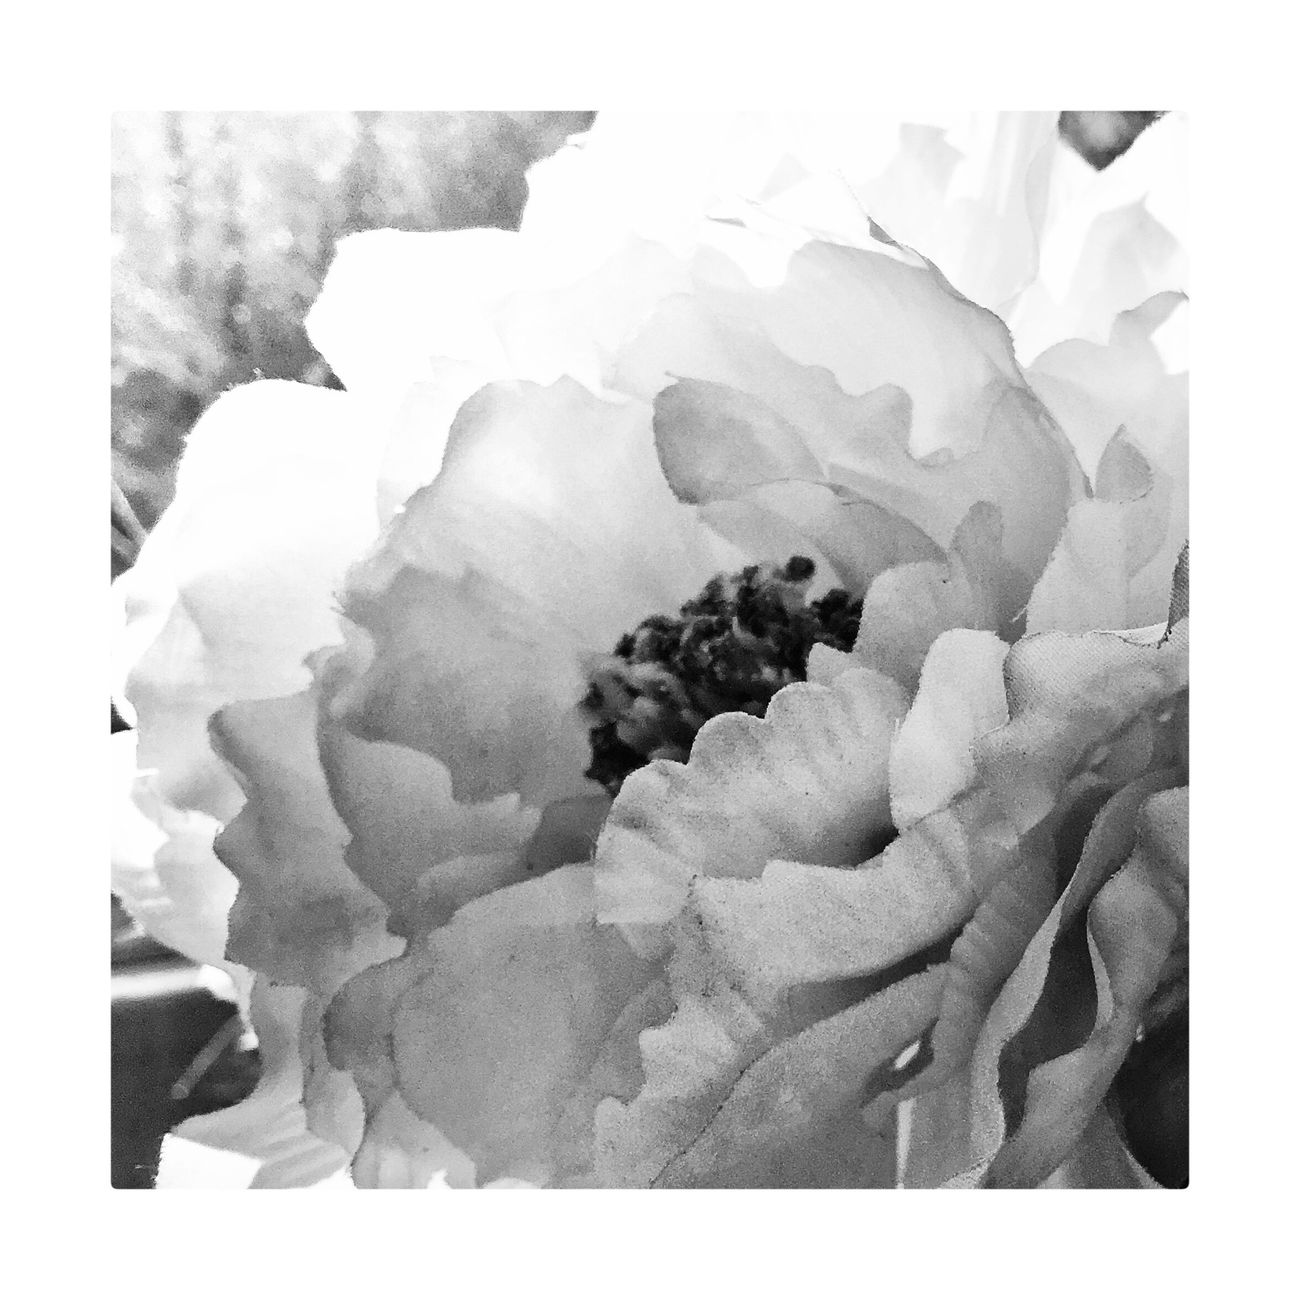 Close-up No People Nature Beauty In Nature Home Interior White Background Freshness Day Nature Blackandwhite Monochrome Black And White Photography